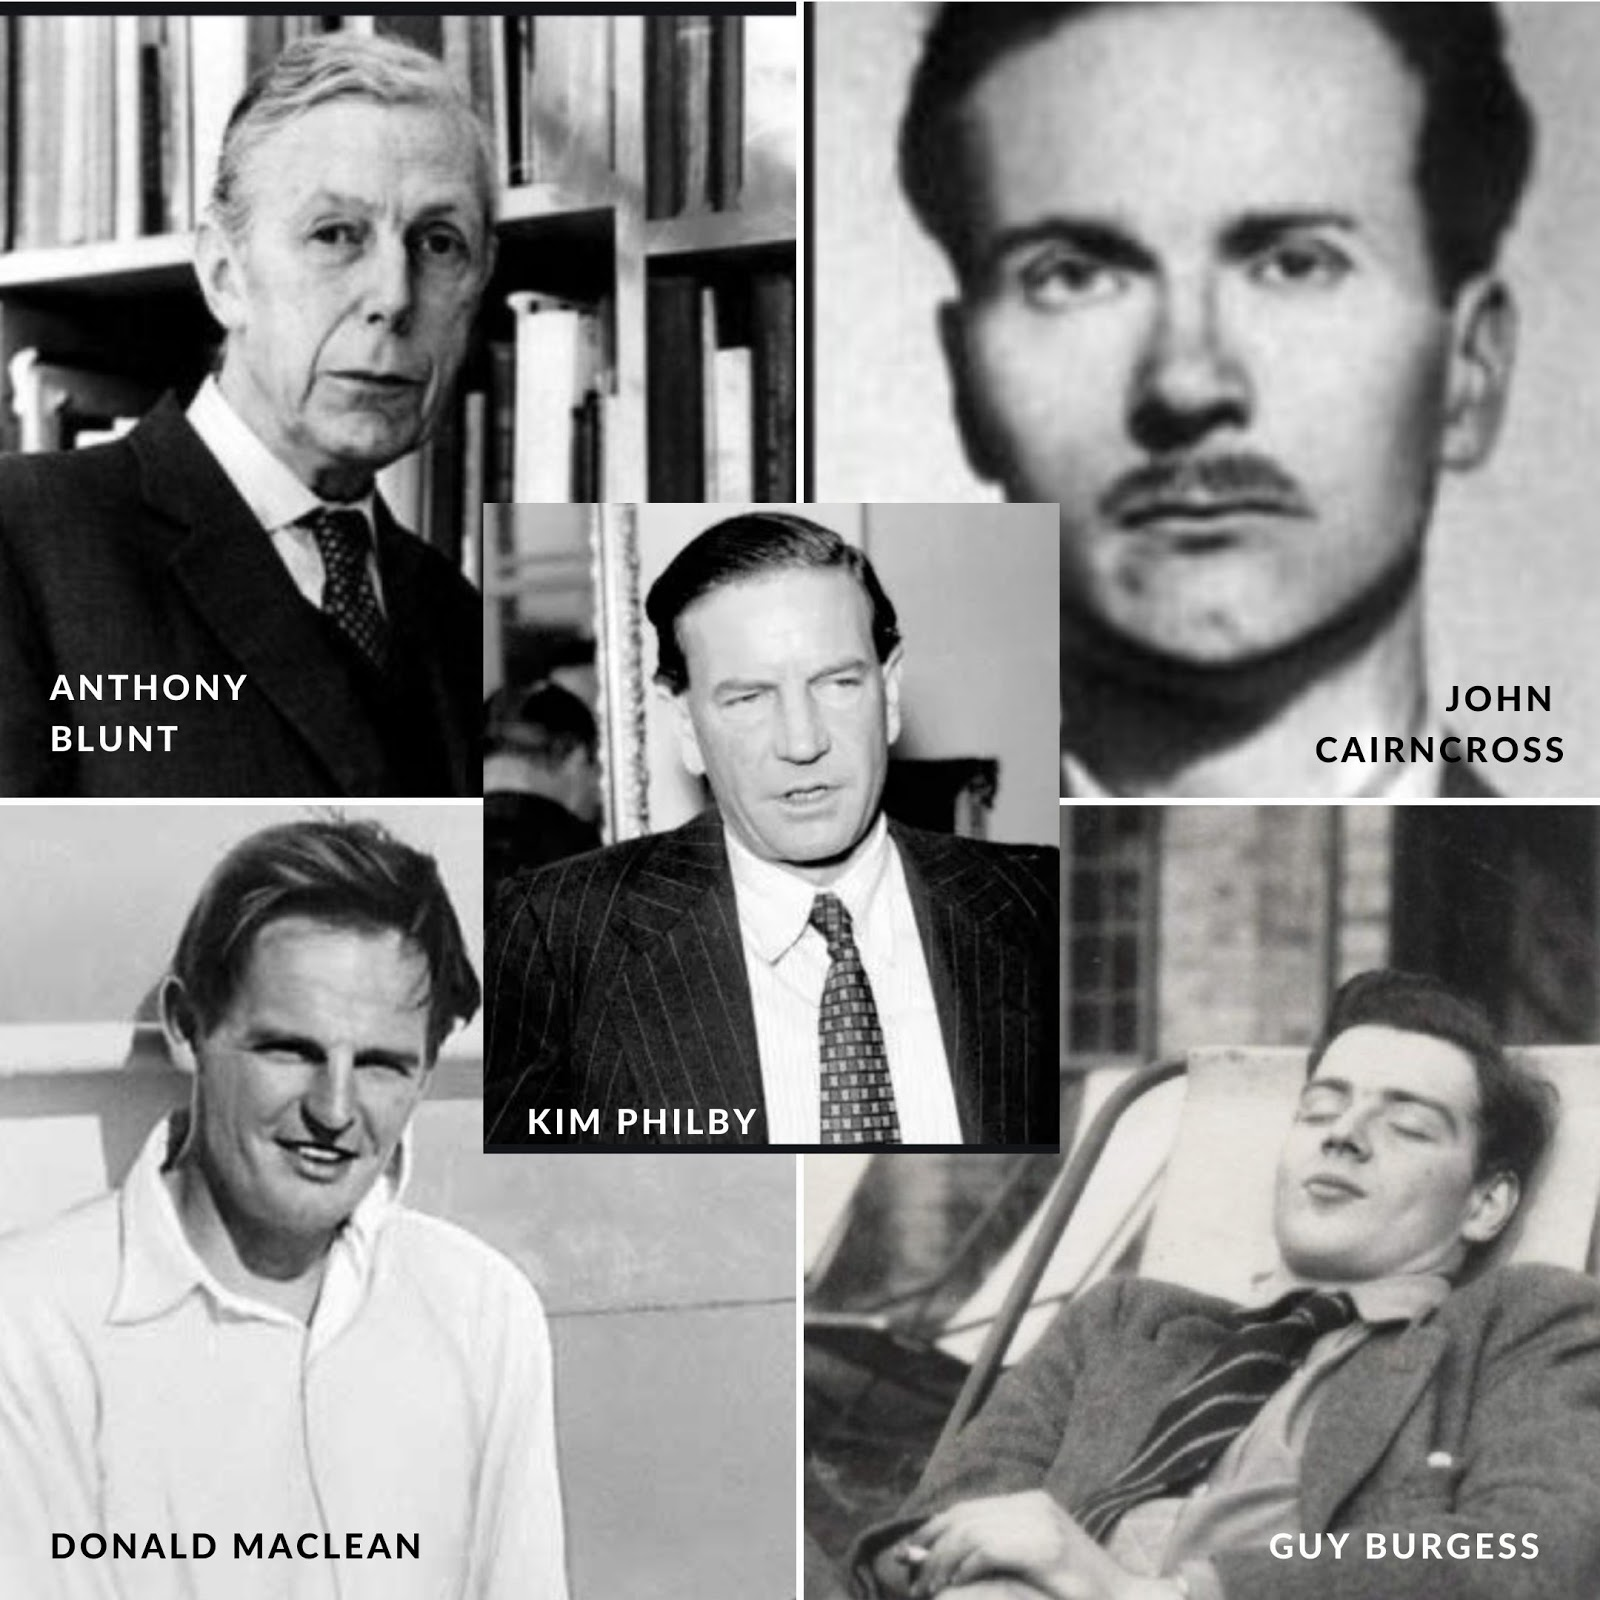 The Cambridge Five: Anthony Blunt, John Cairncross, Guy Burgess, Kim Philby and Donald Maclean